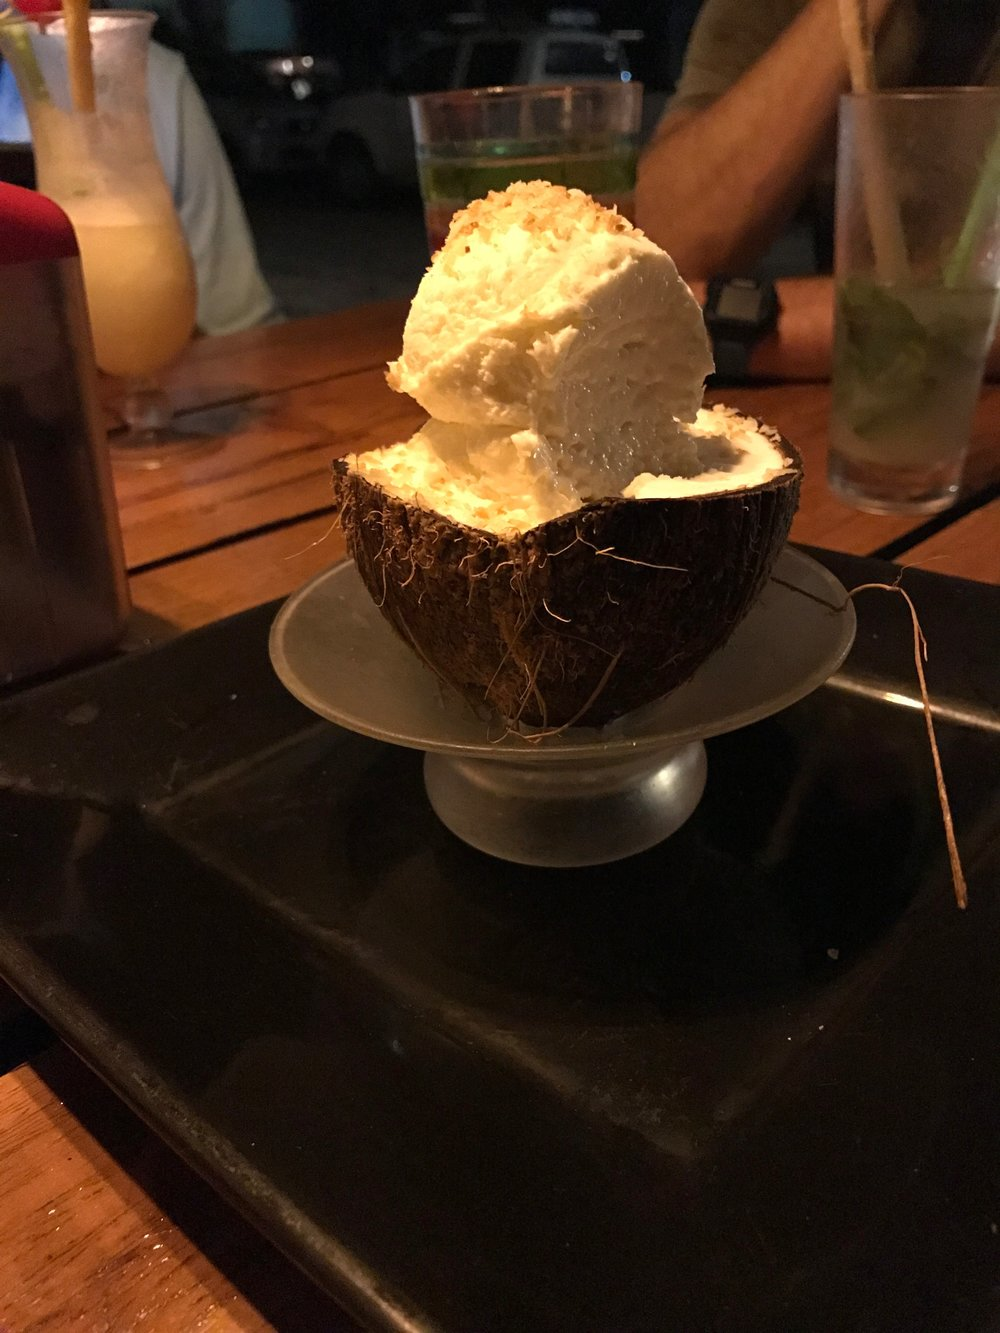 Coco Loco's Coconut Ice Cream. Yum!